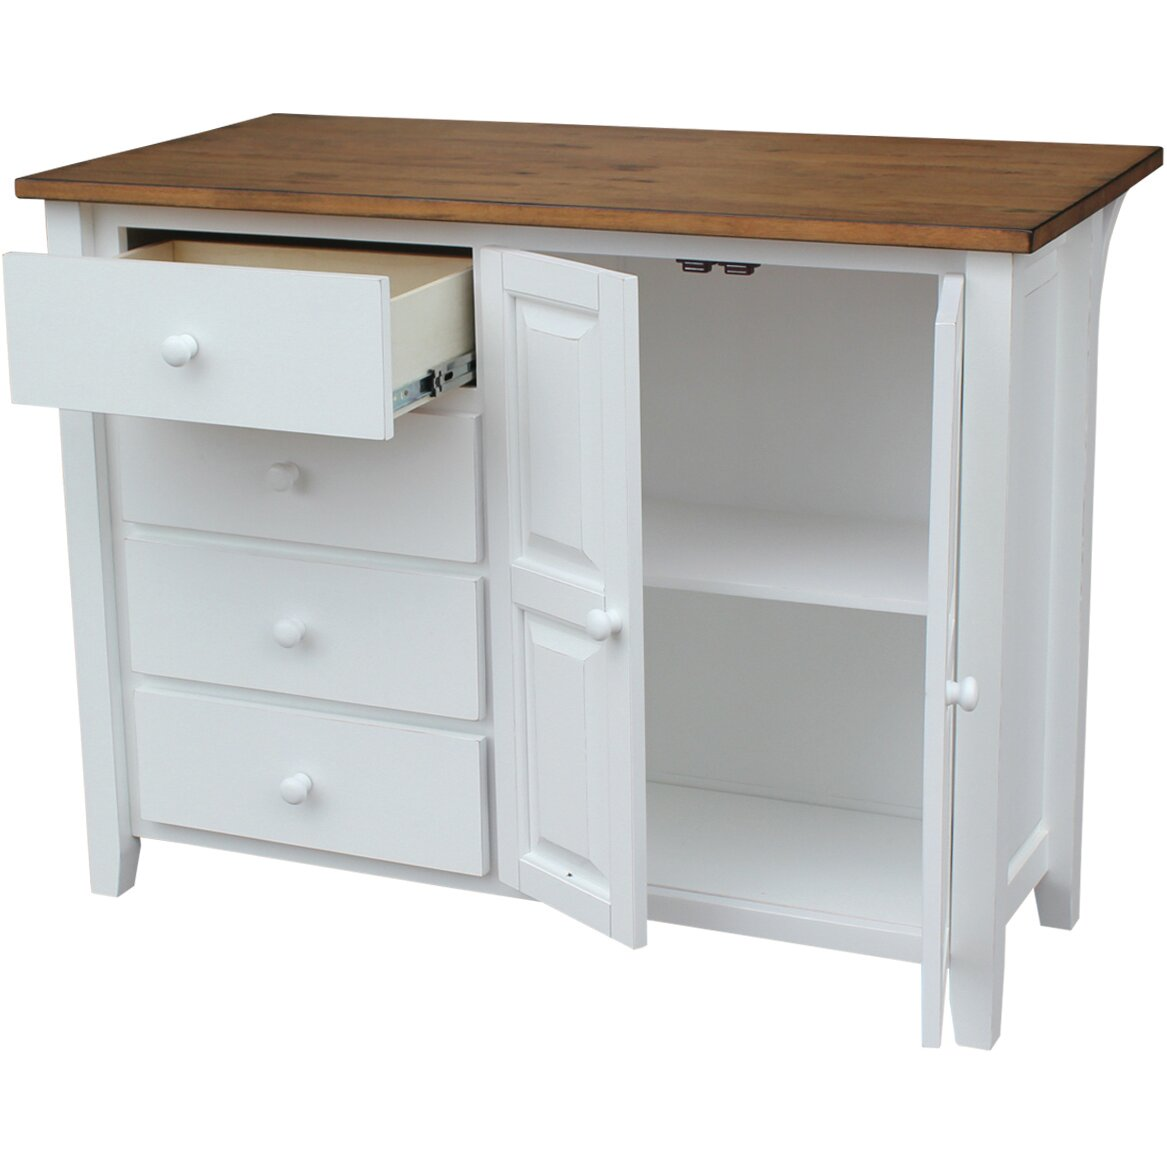 Wayfair Com Sales: Just Cabinets Belmont Kitchen Island